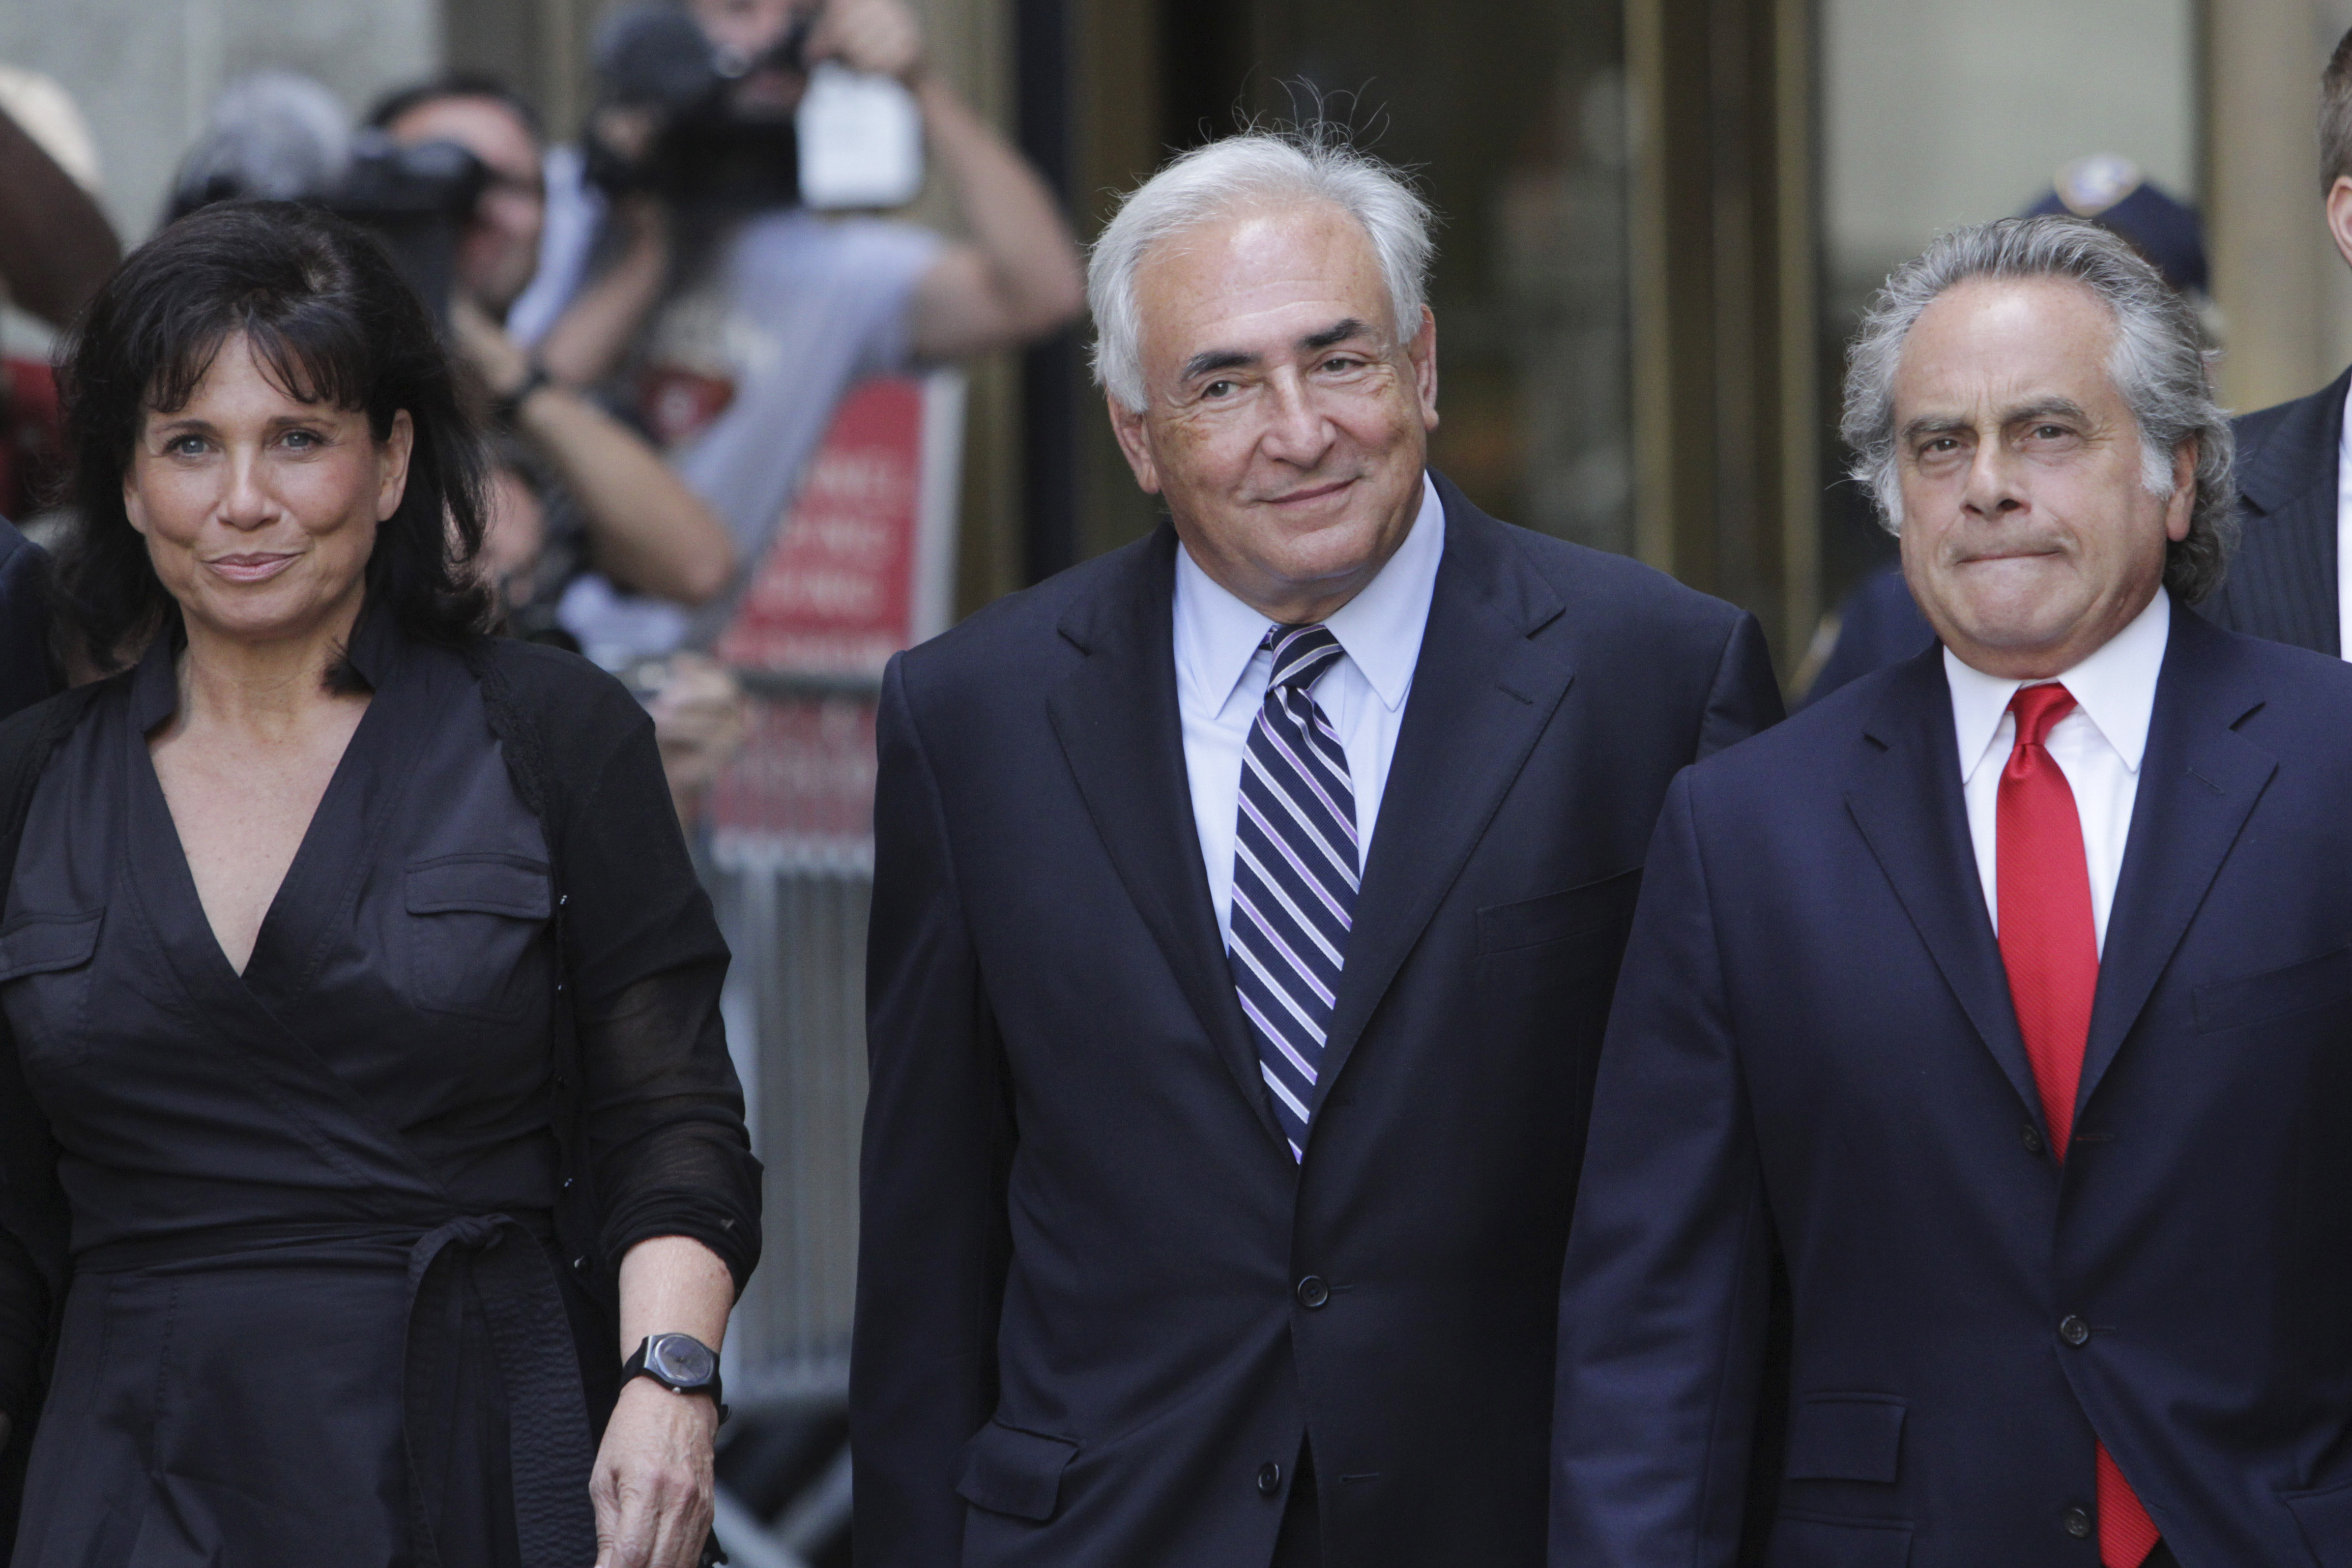 Sex charges dropped against Strauss-Kahn - CBS News